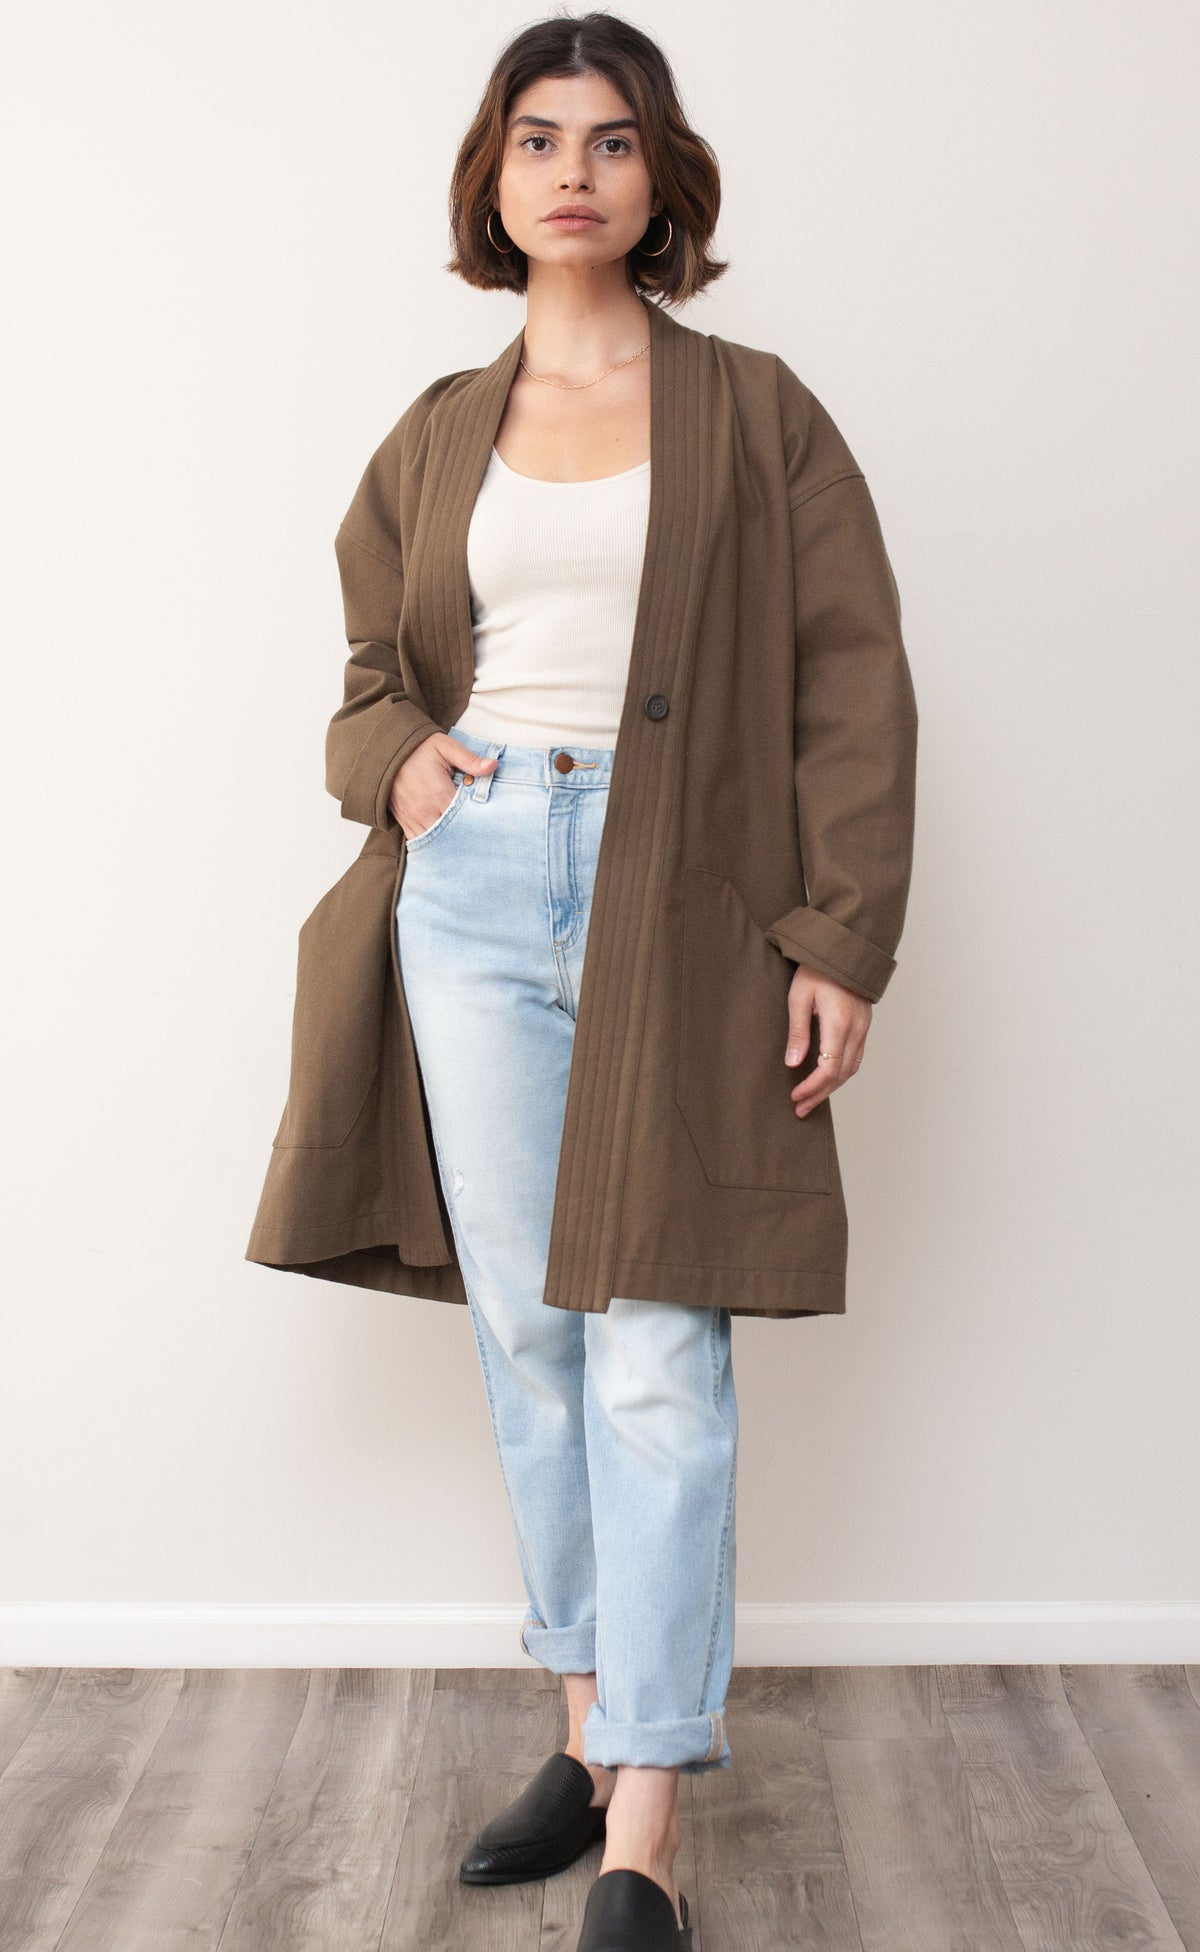 The Fellow - Long Sleeve Duster Coat